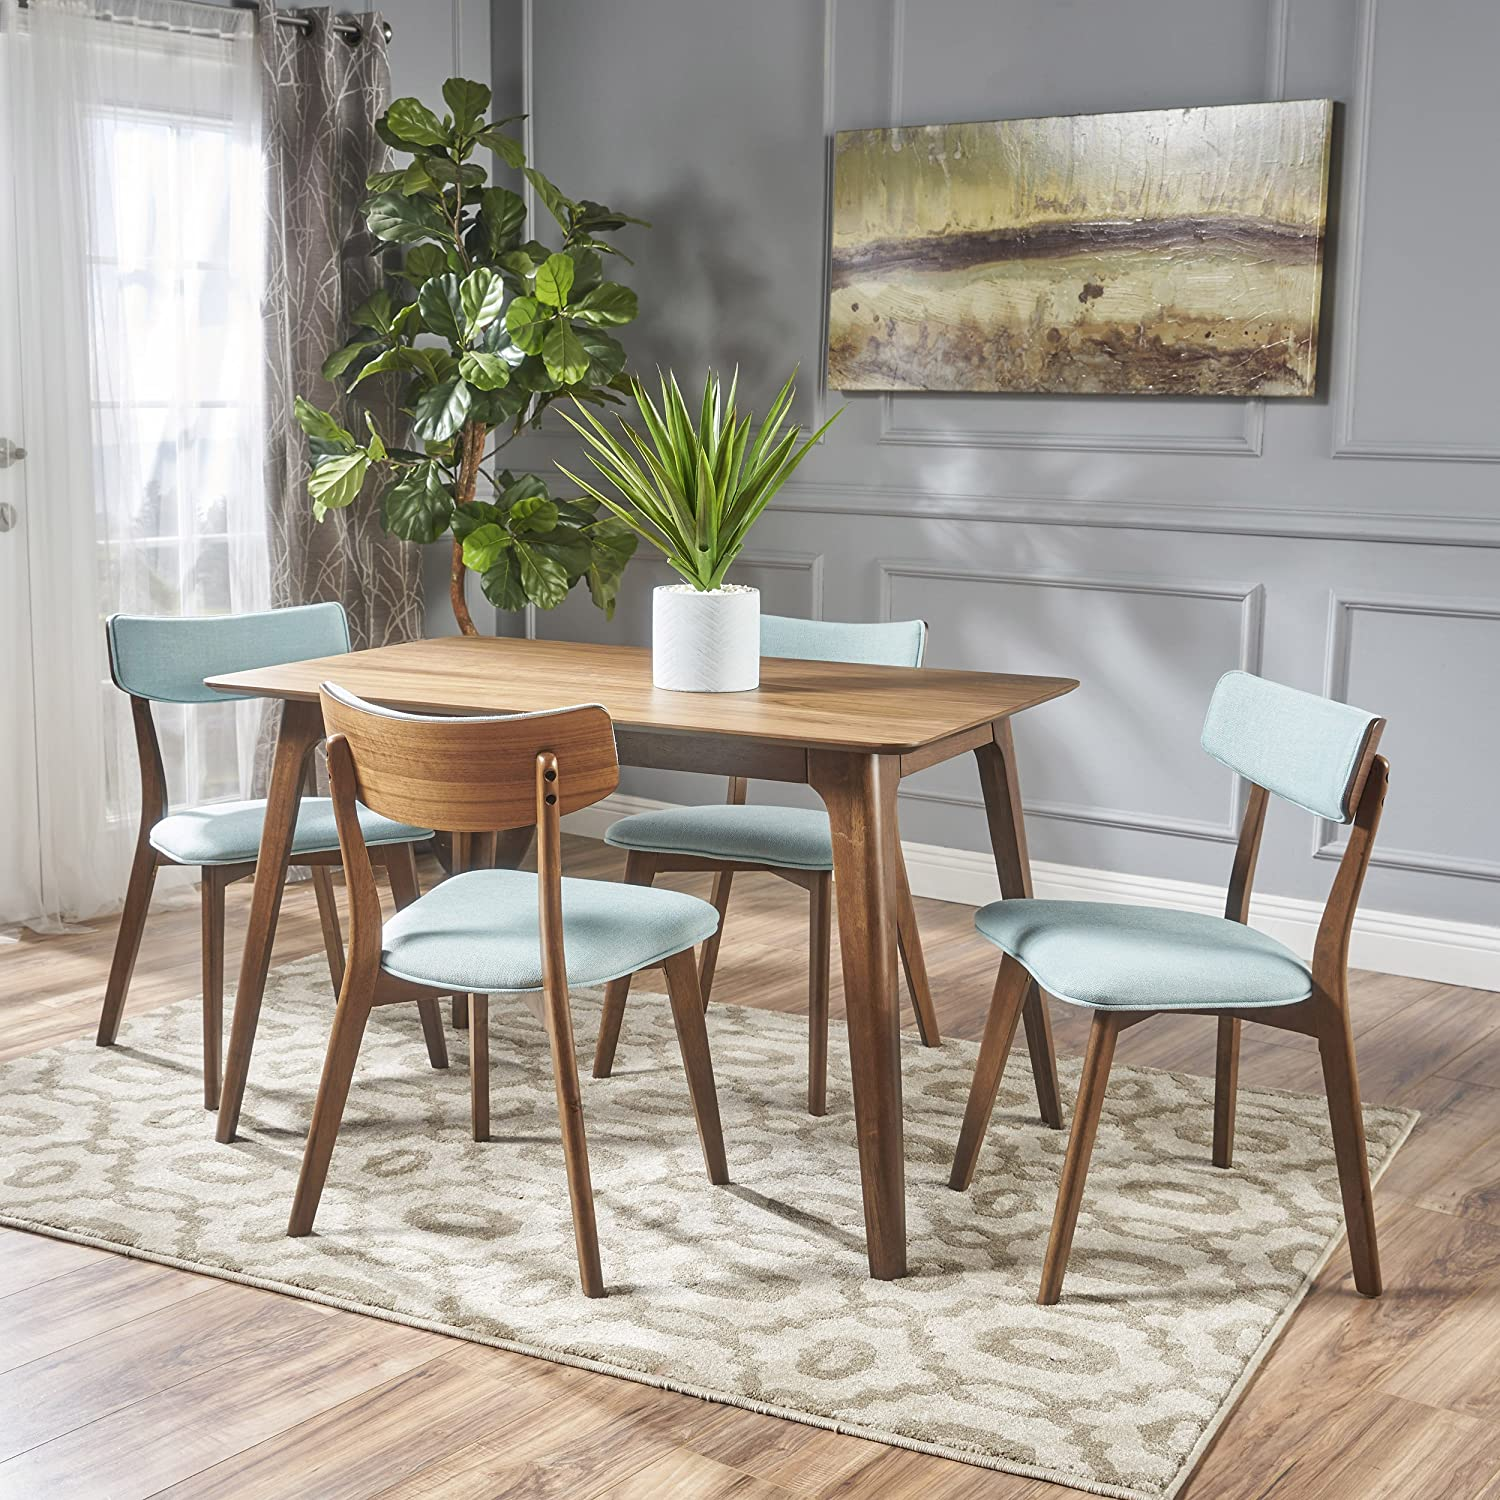 Meanda Mid Century Natural Walnut Finished 5 Piece Wood Dining Set with Mint Fabric Chairs